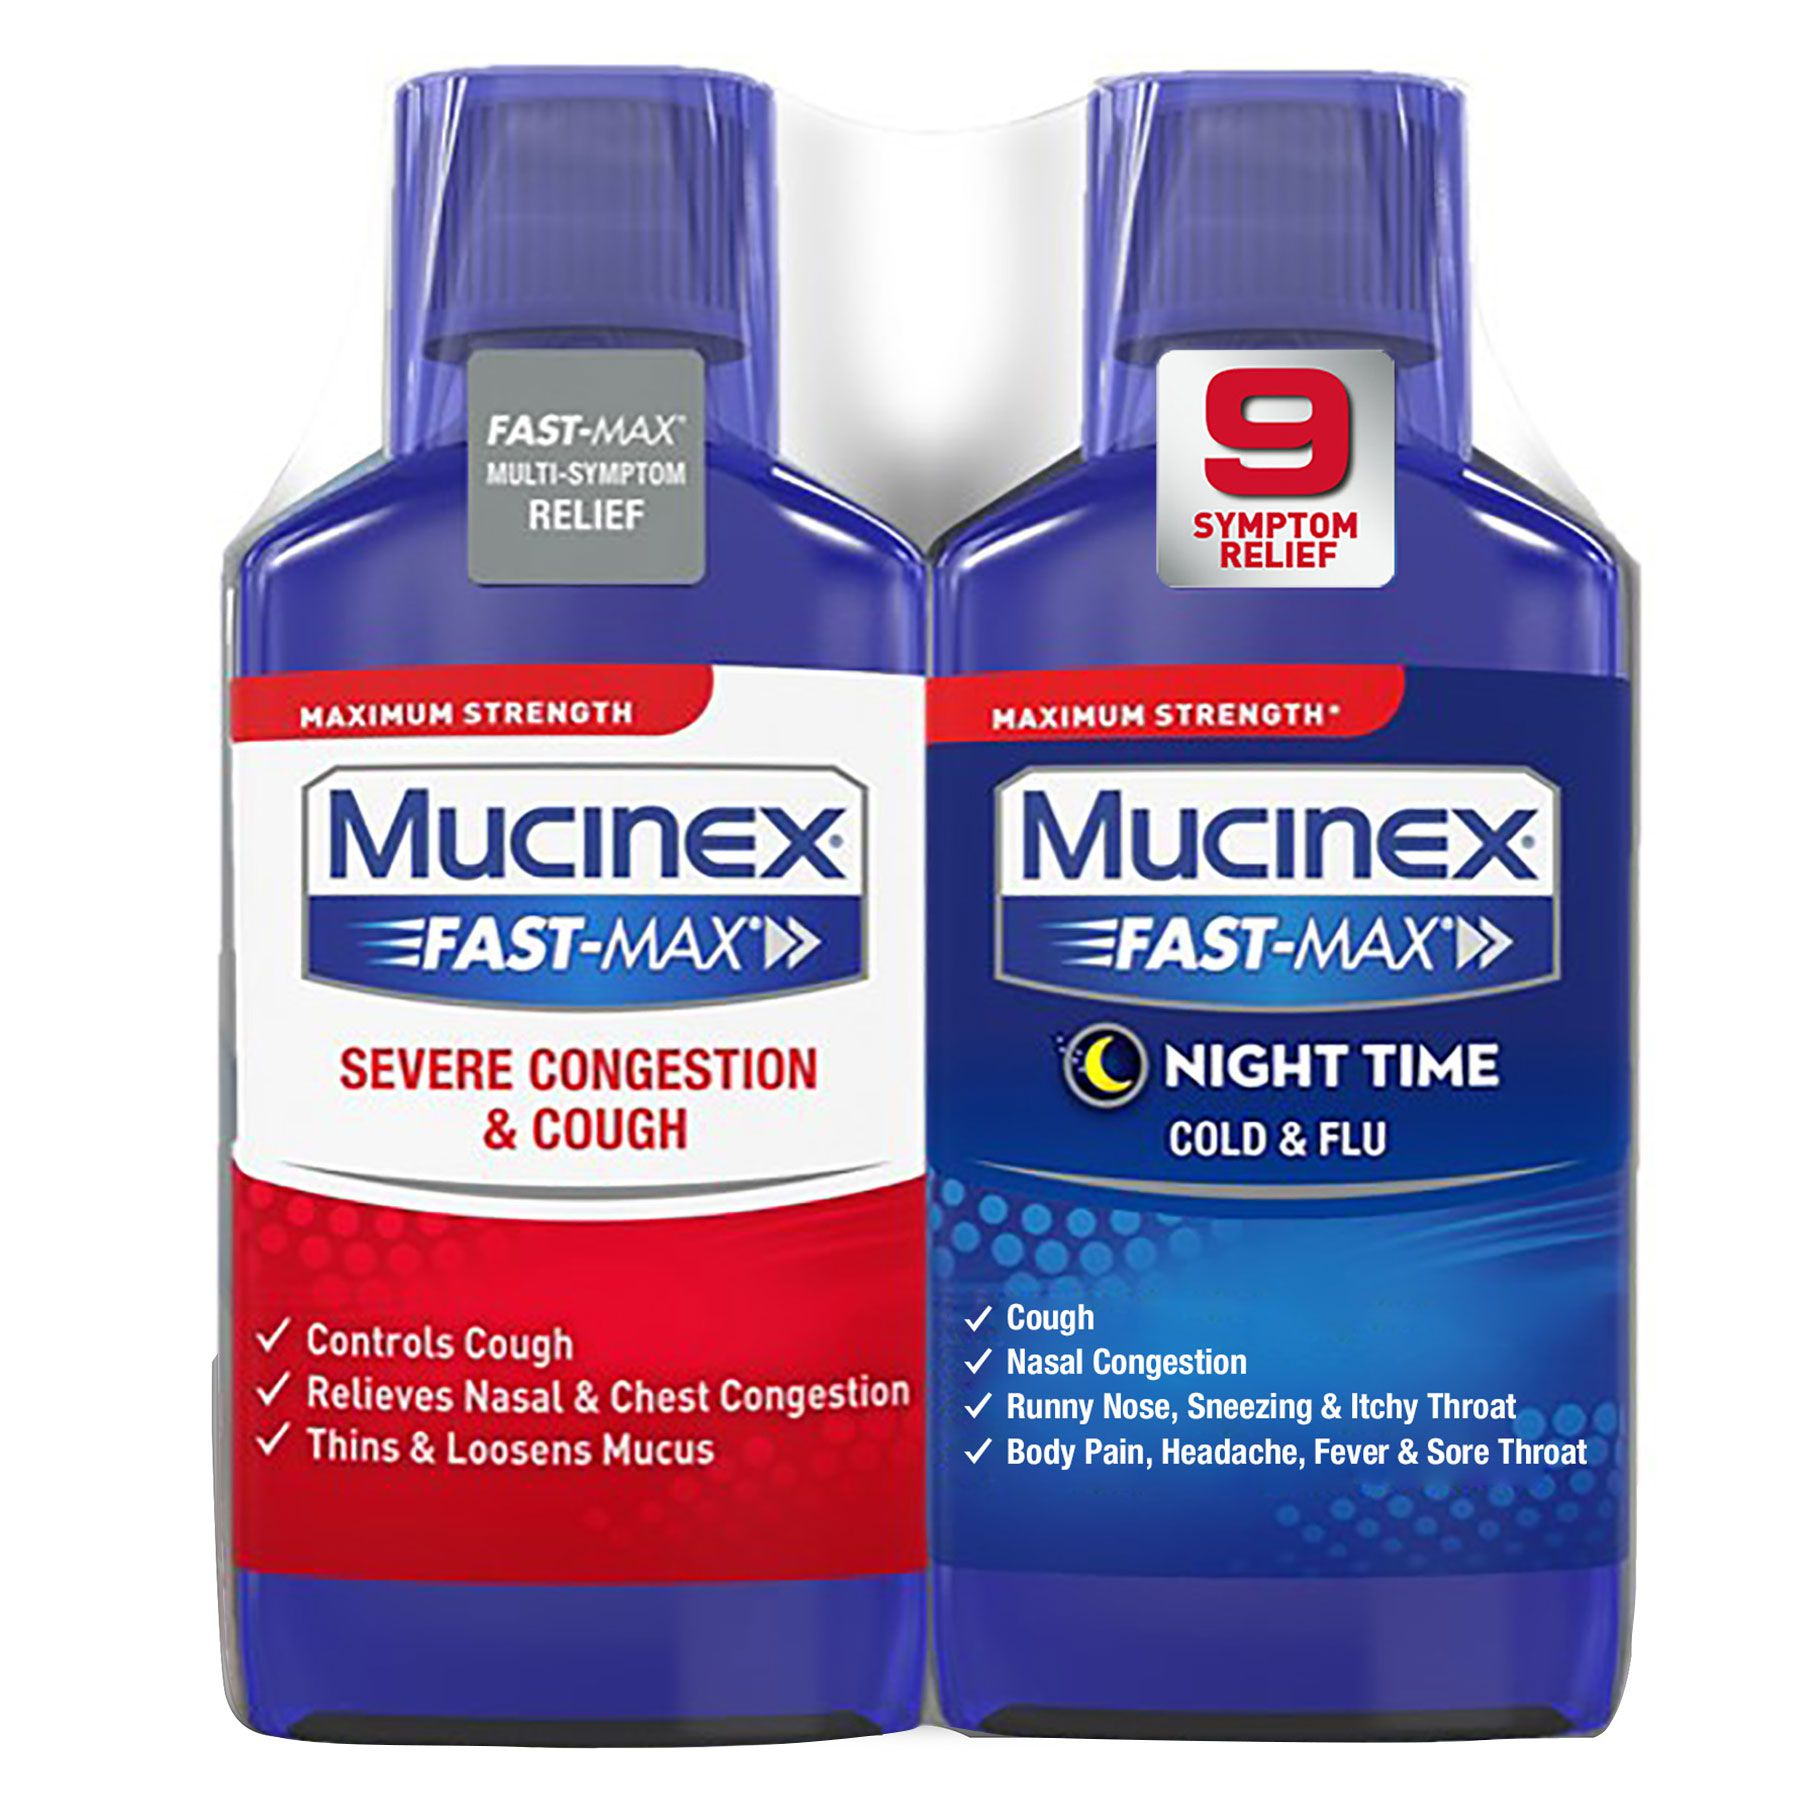 Mucinex Fast-Max Night Time Cold And Flu Reviews Mucinex Fast-Max Night Time Cold And Flu Reviews new picture